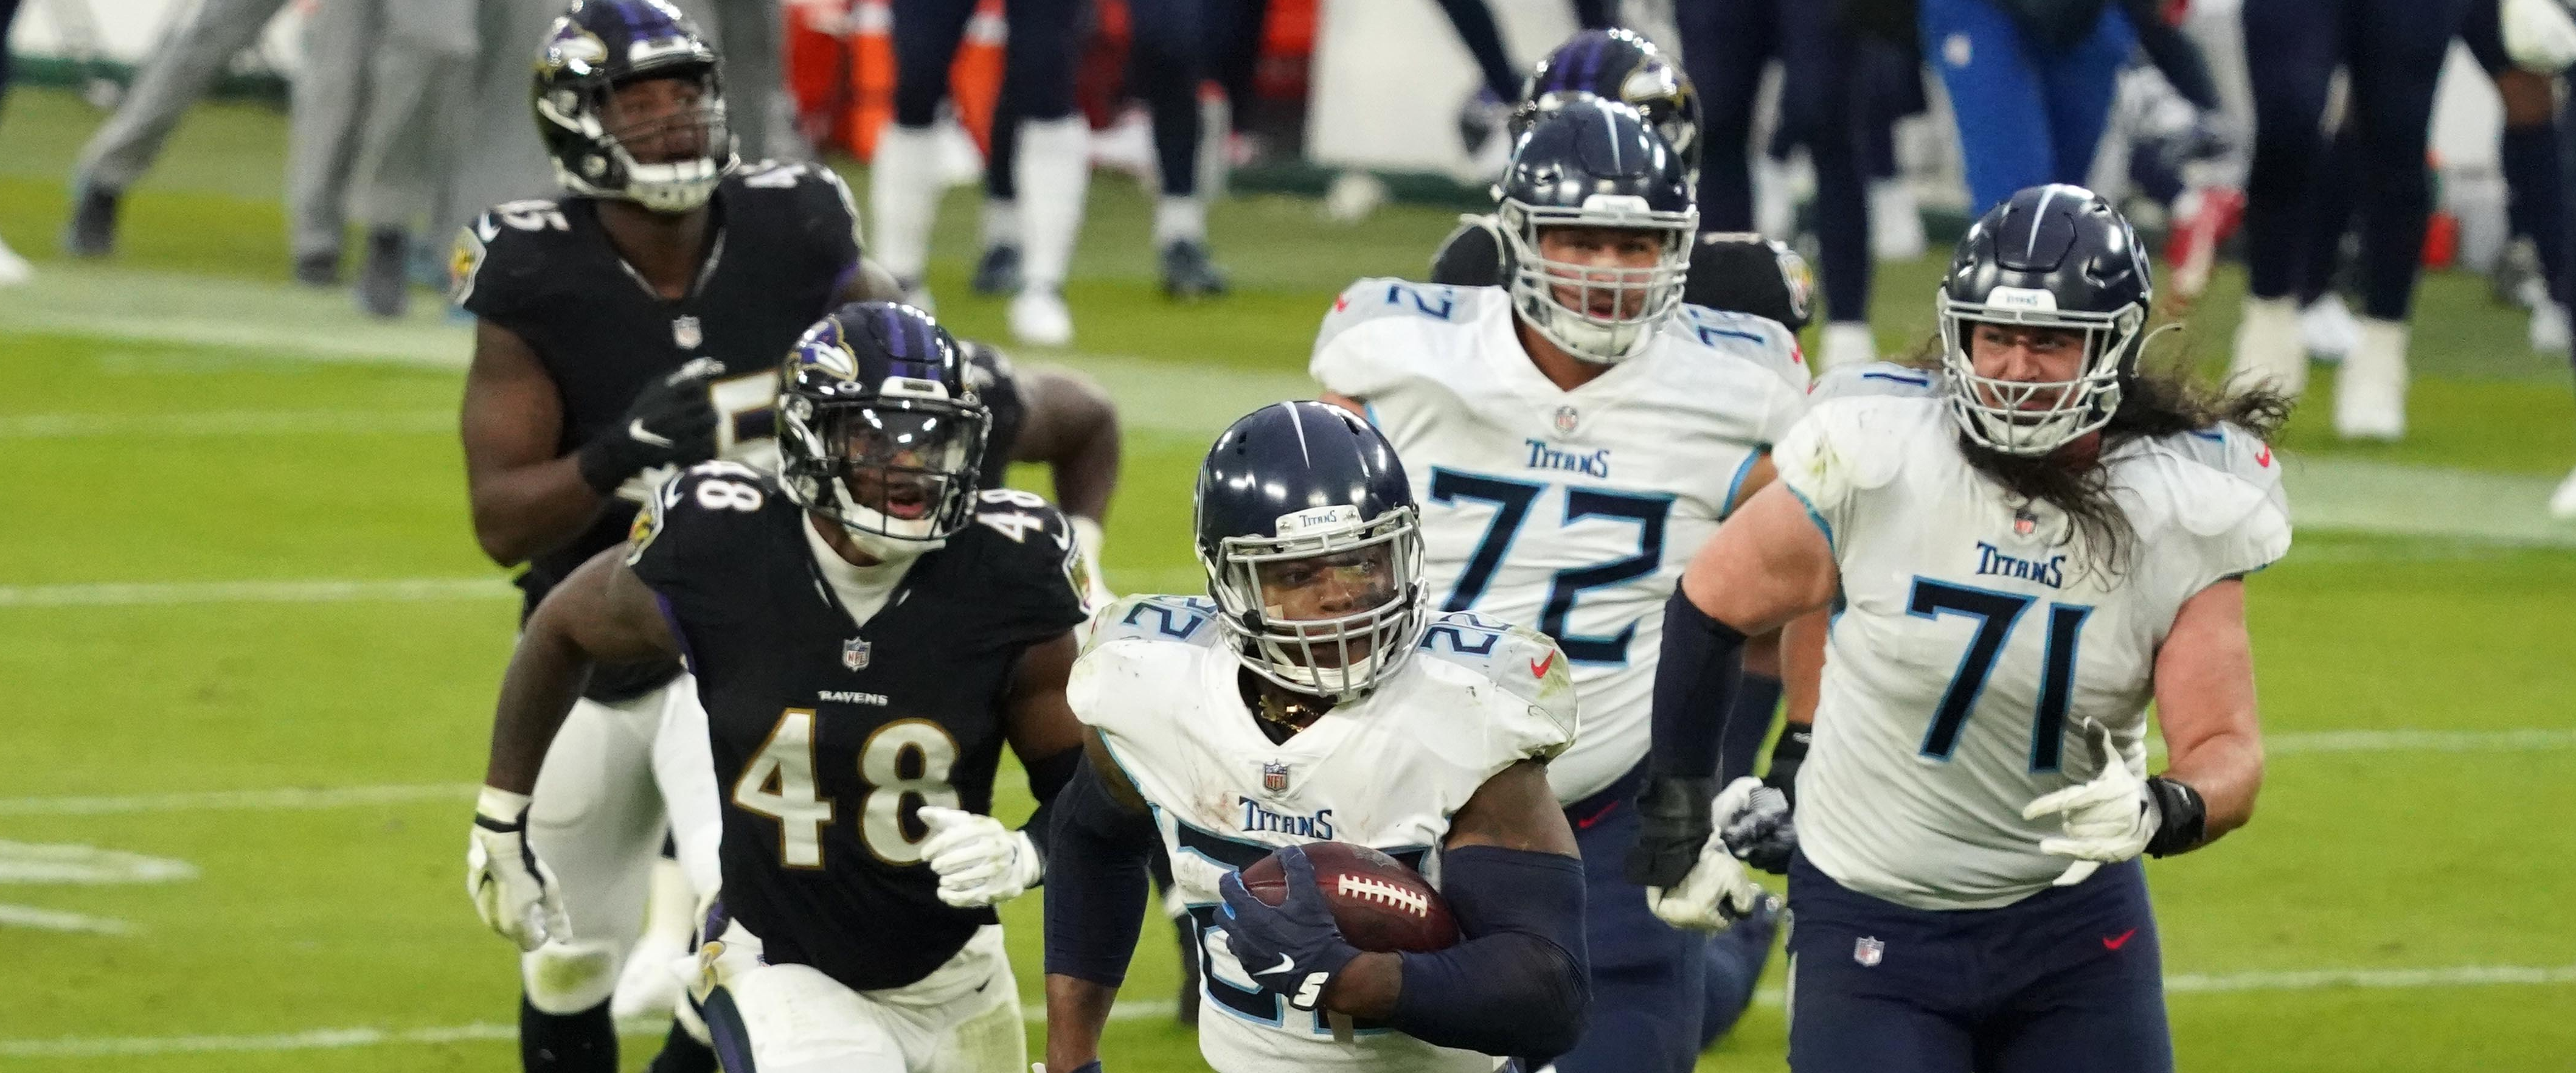 Titans: The good, the bad, and the ugly from the win over the Ravens